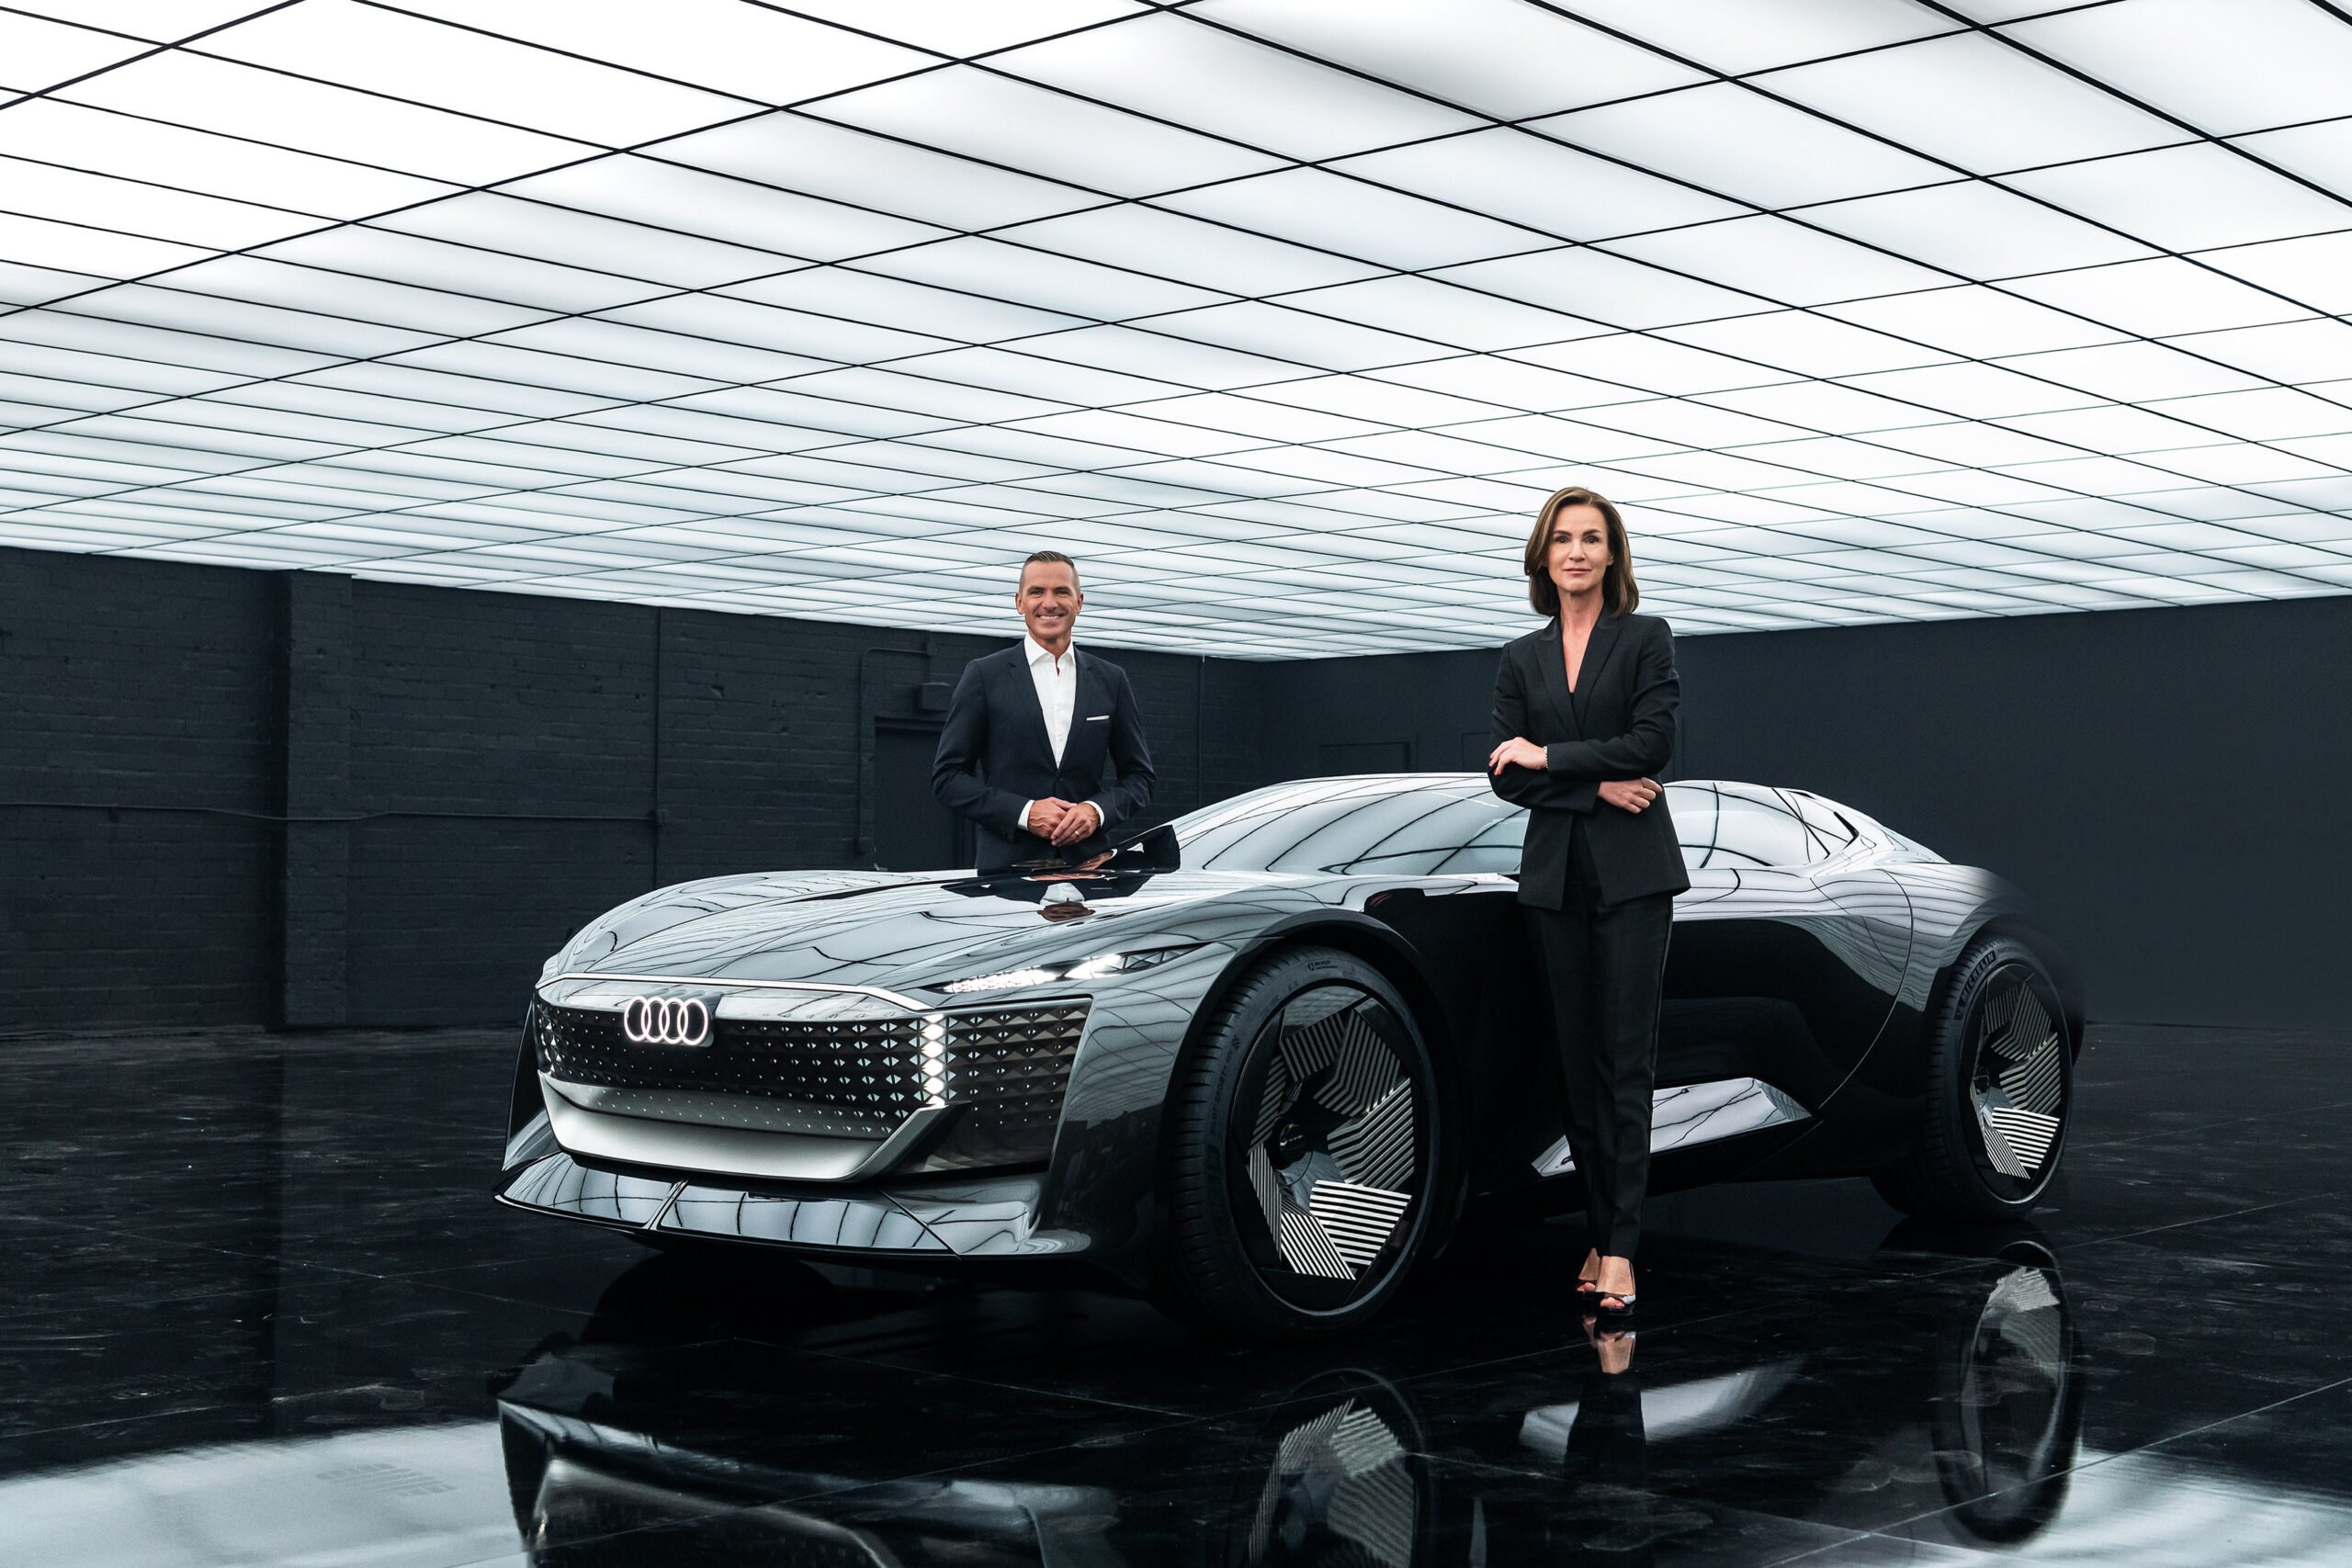 The Audi skysphere concept shows how the brand is redefining luxury in the future